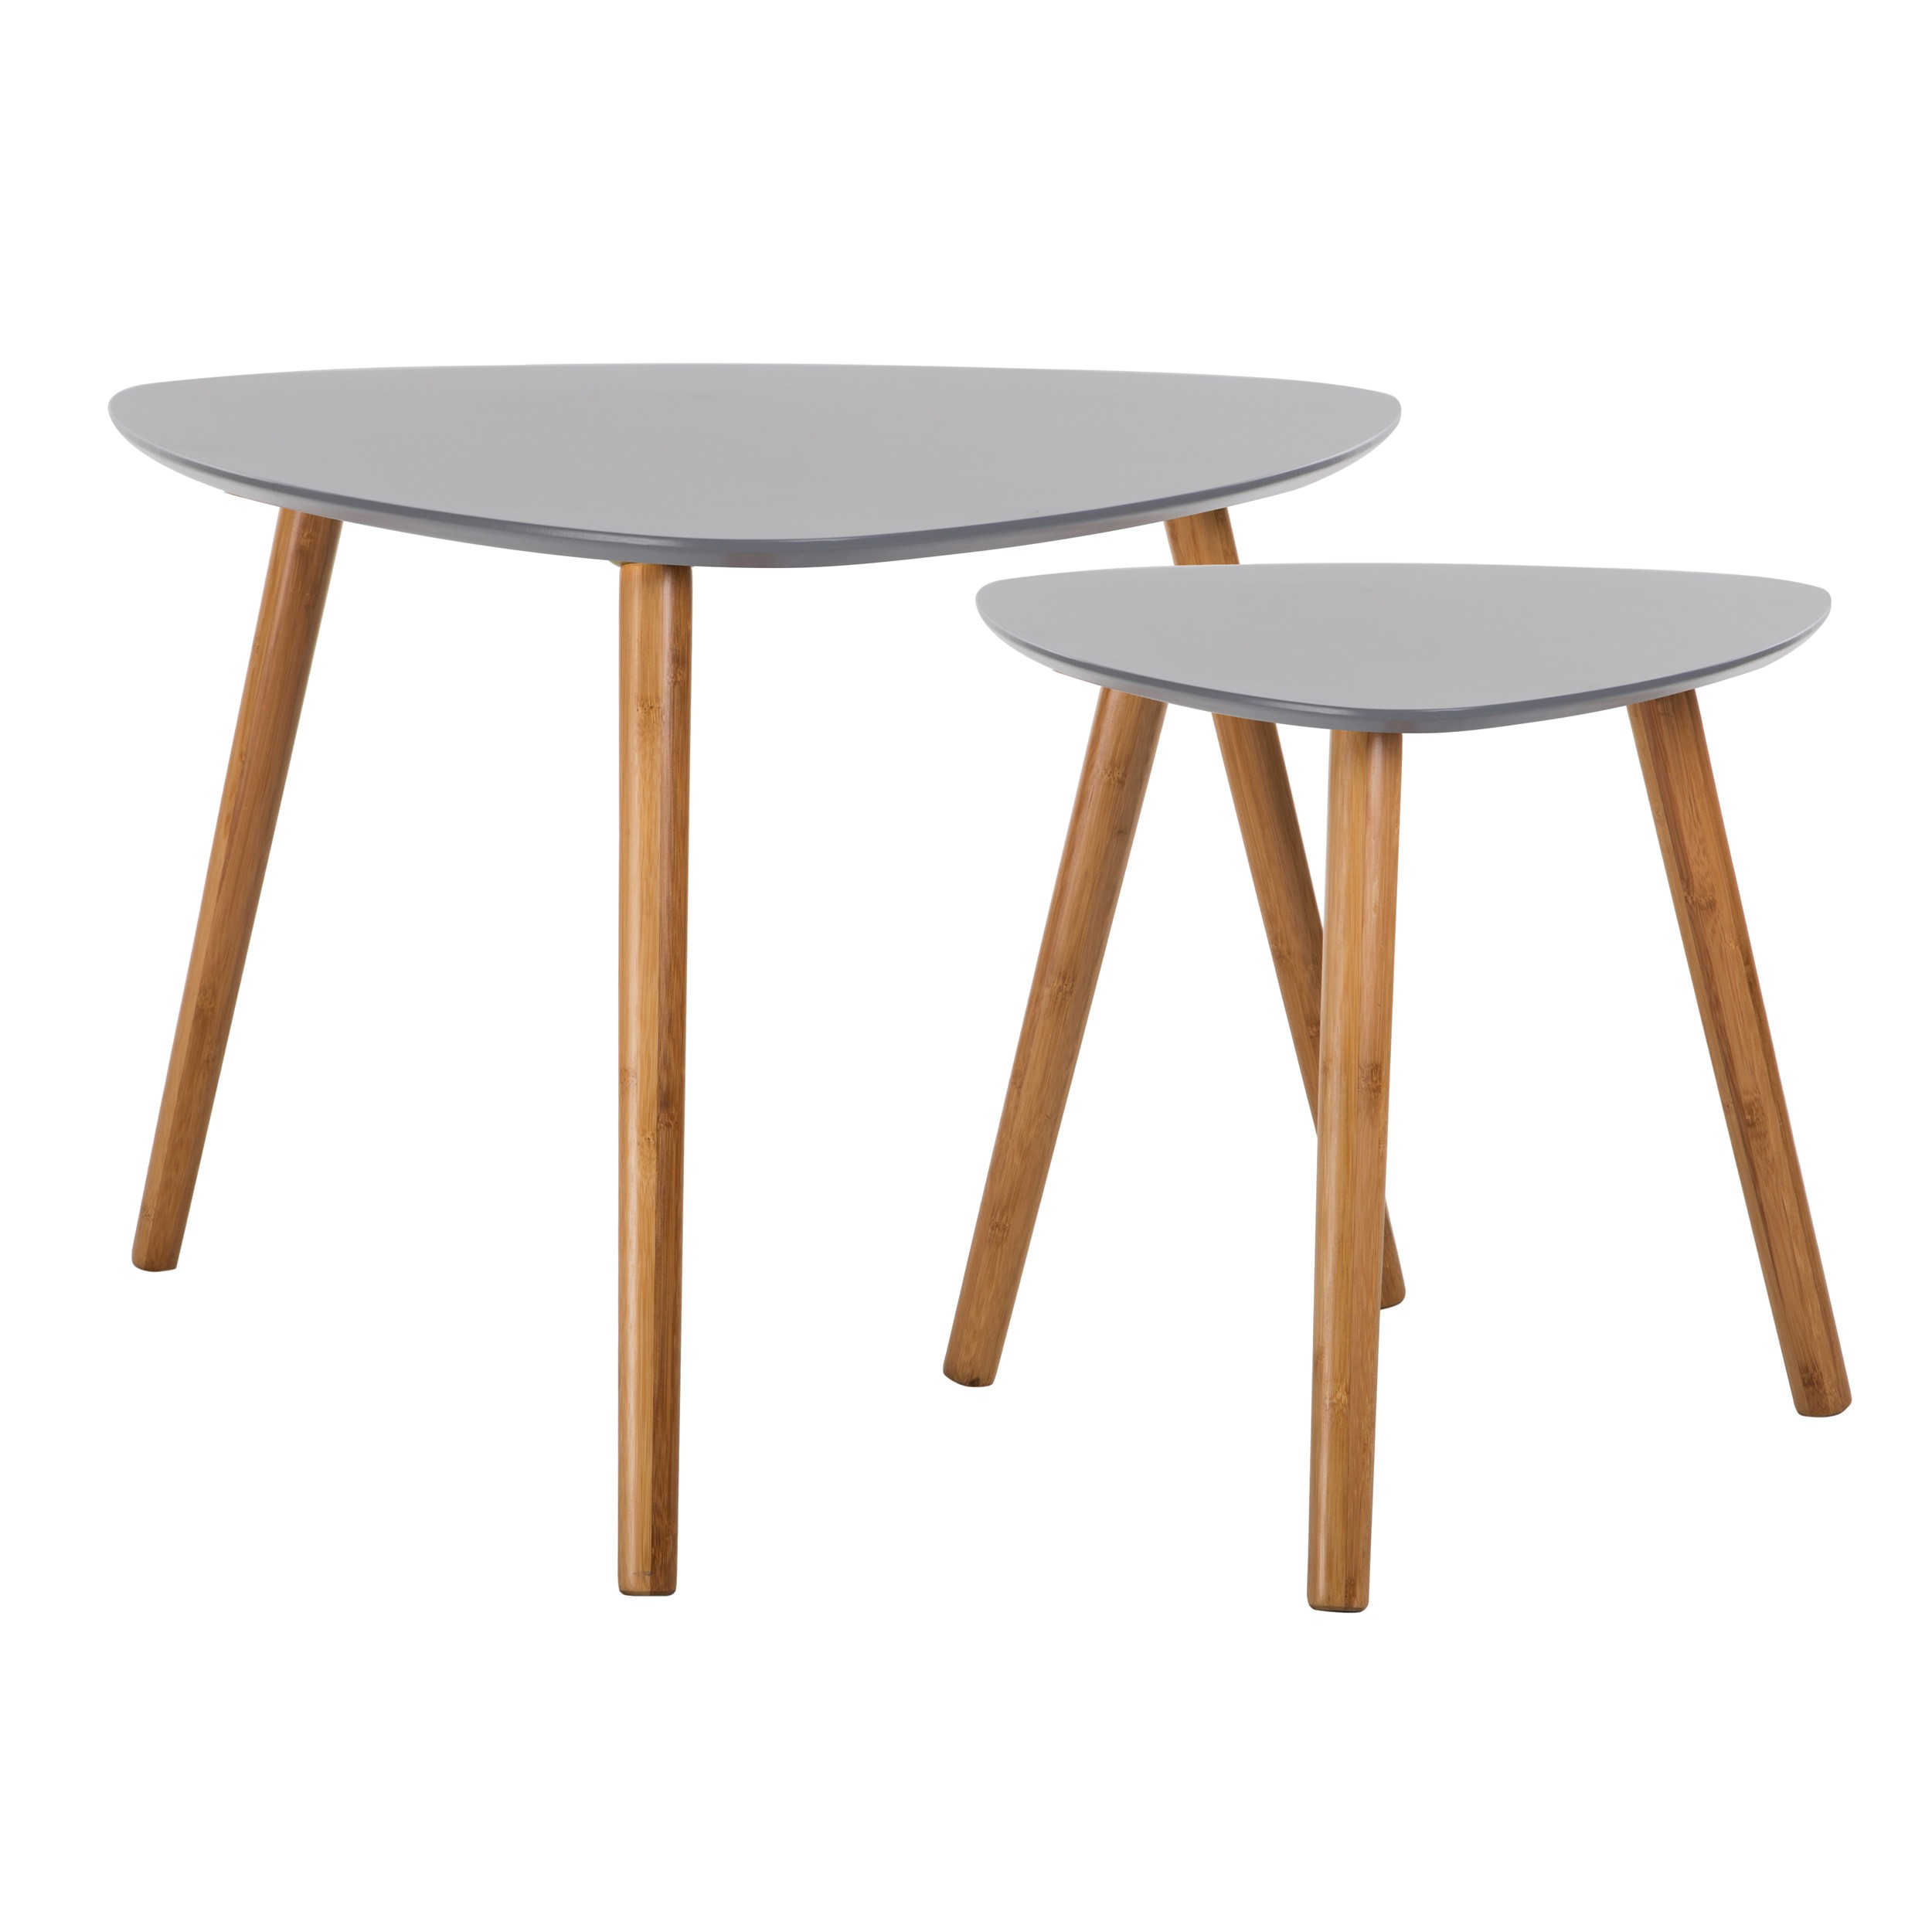 Table basse scandinave grise lot de 2 commandez nos - Table de salon style scandinave ...